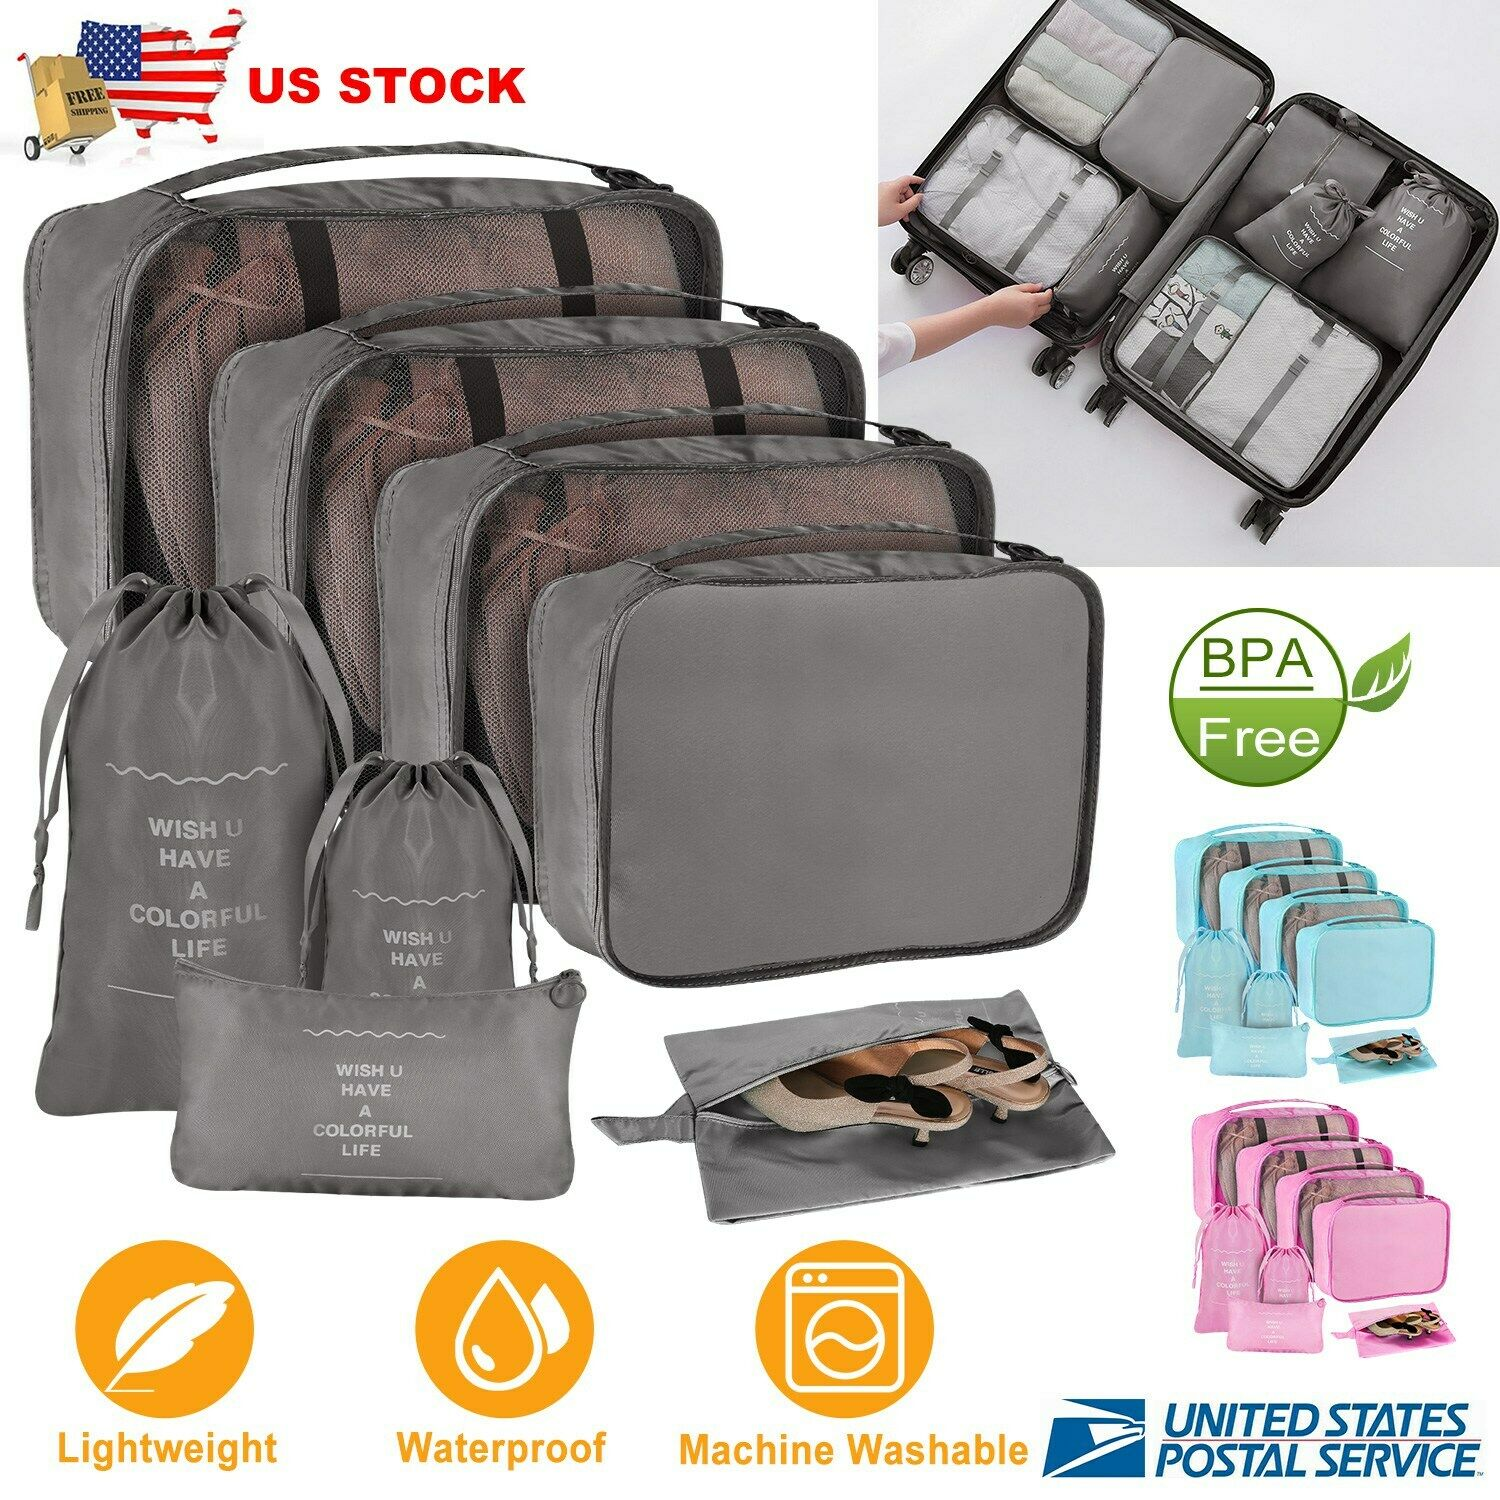 8pcs Travel Clothes Storage Bags Luggage Organizer Pouch Packing Cube ... - s l1600